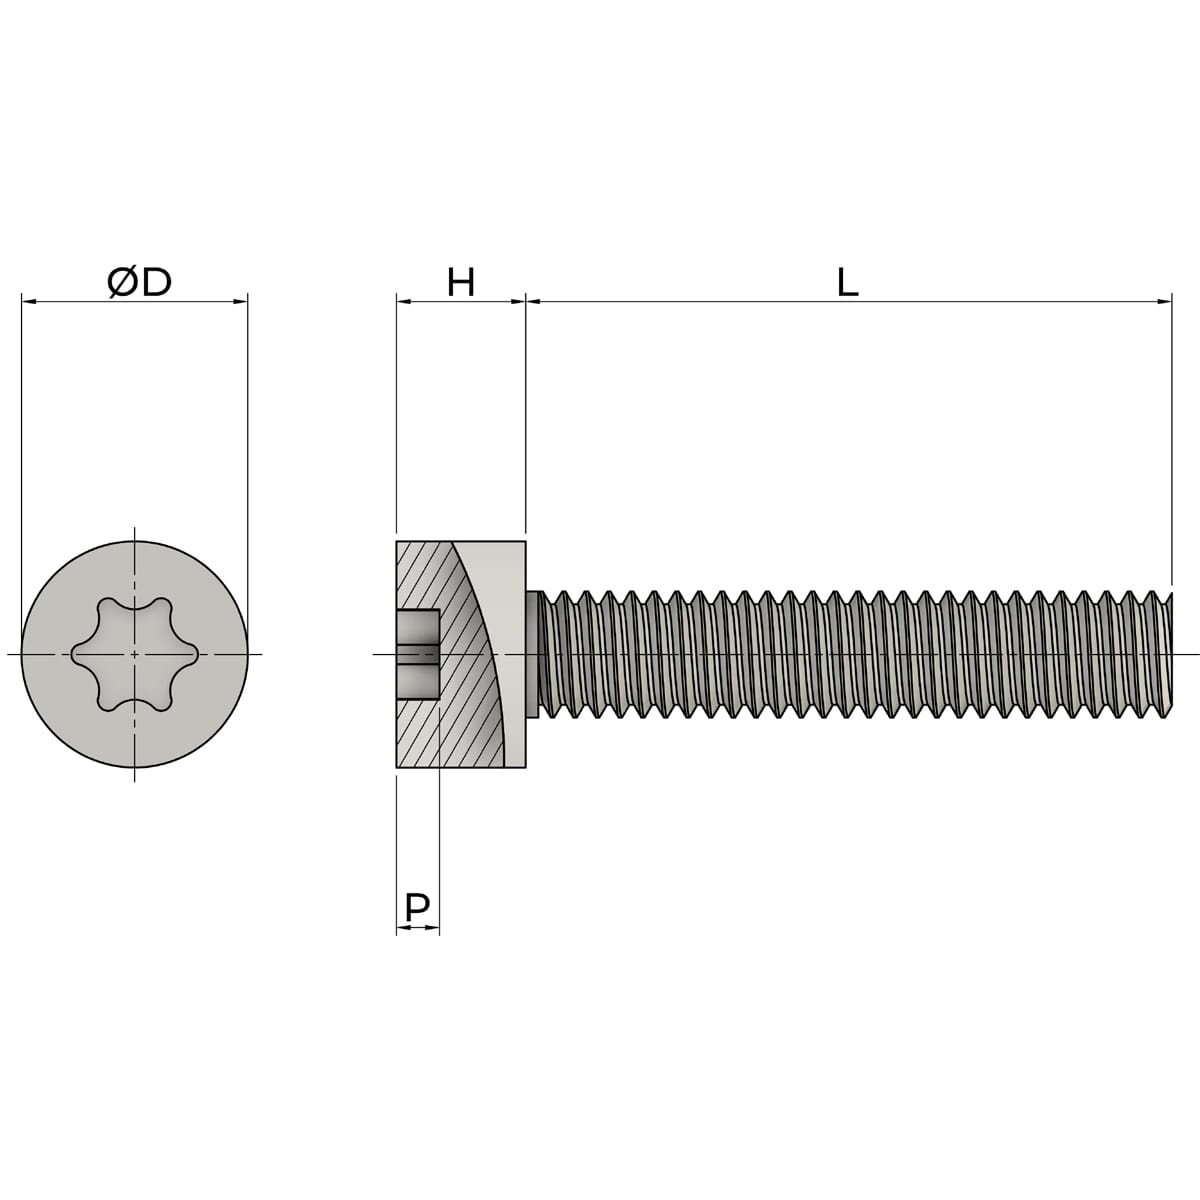 M6 x 8mm Torx Cap Head Screws (ISO 14579) - Marine Stainless Steel (A4) Drawing